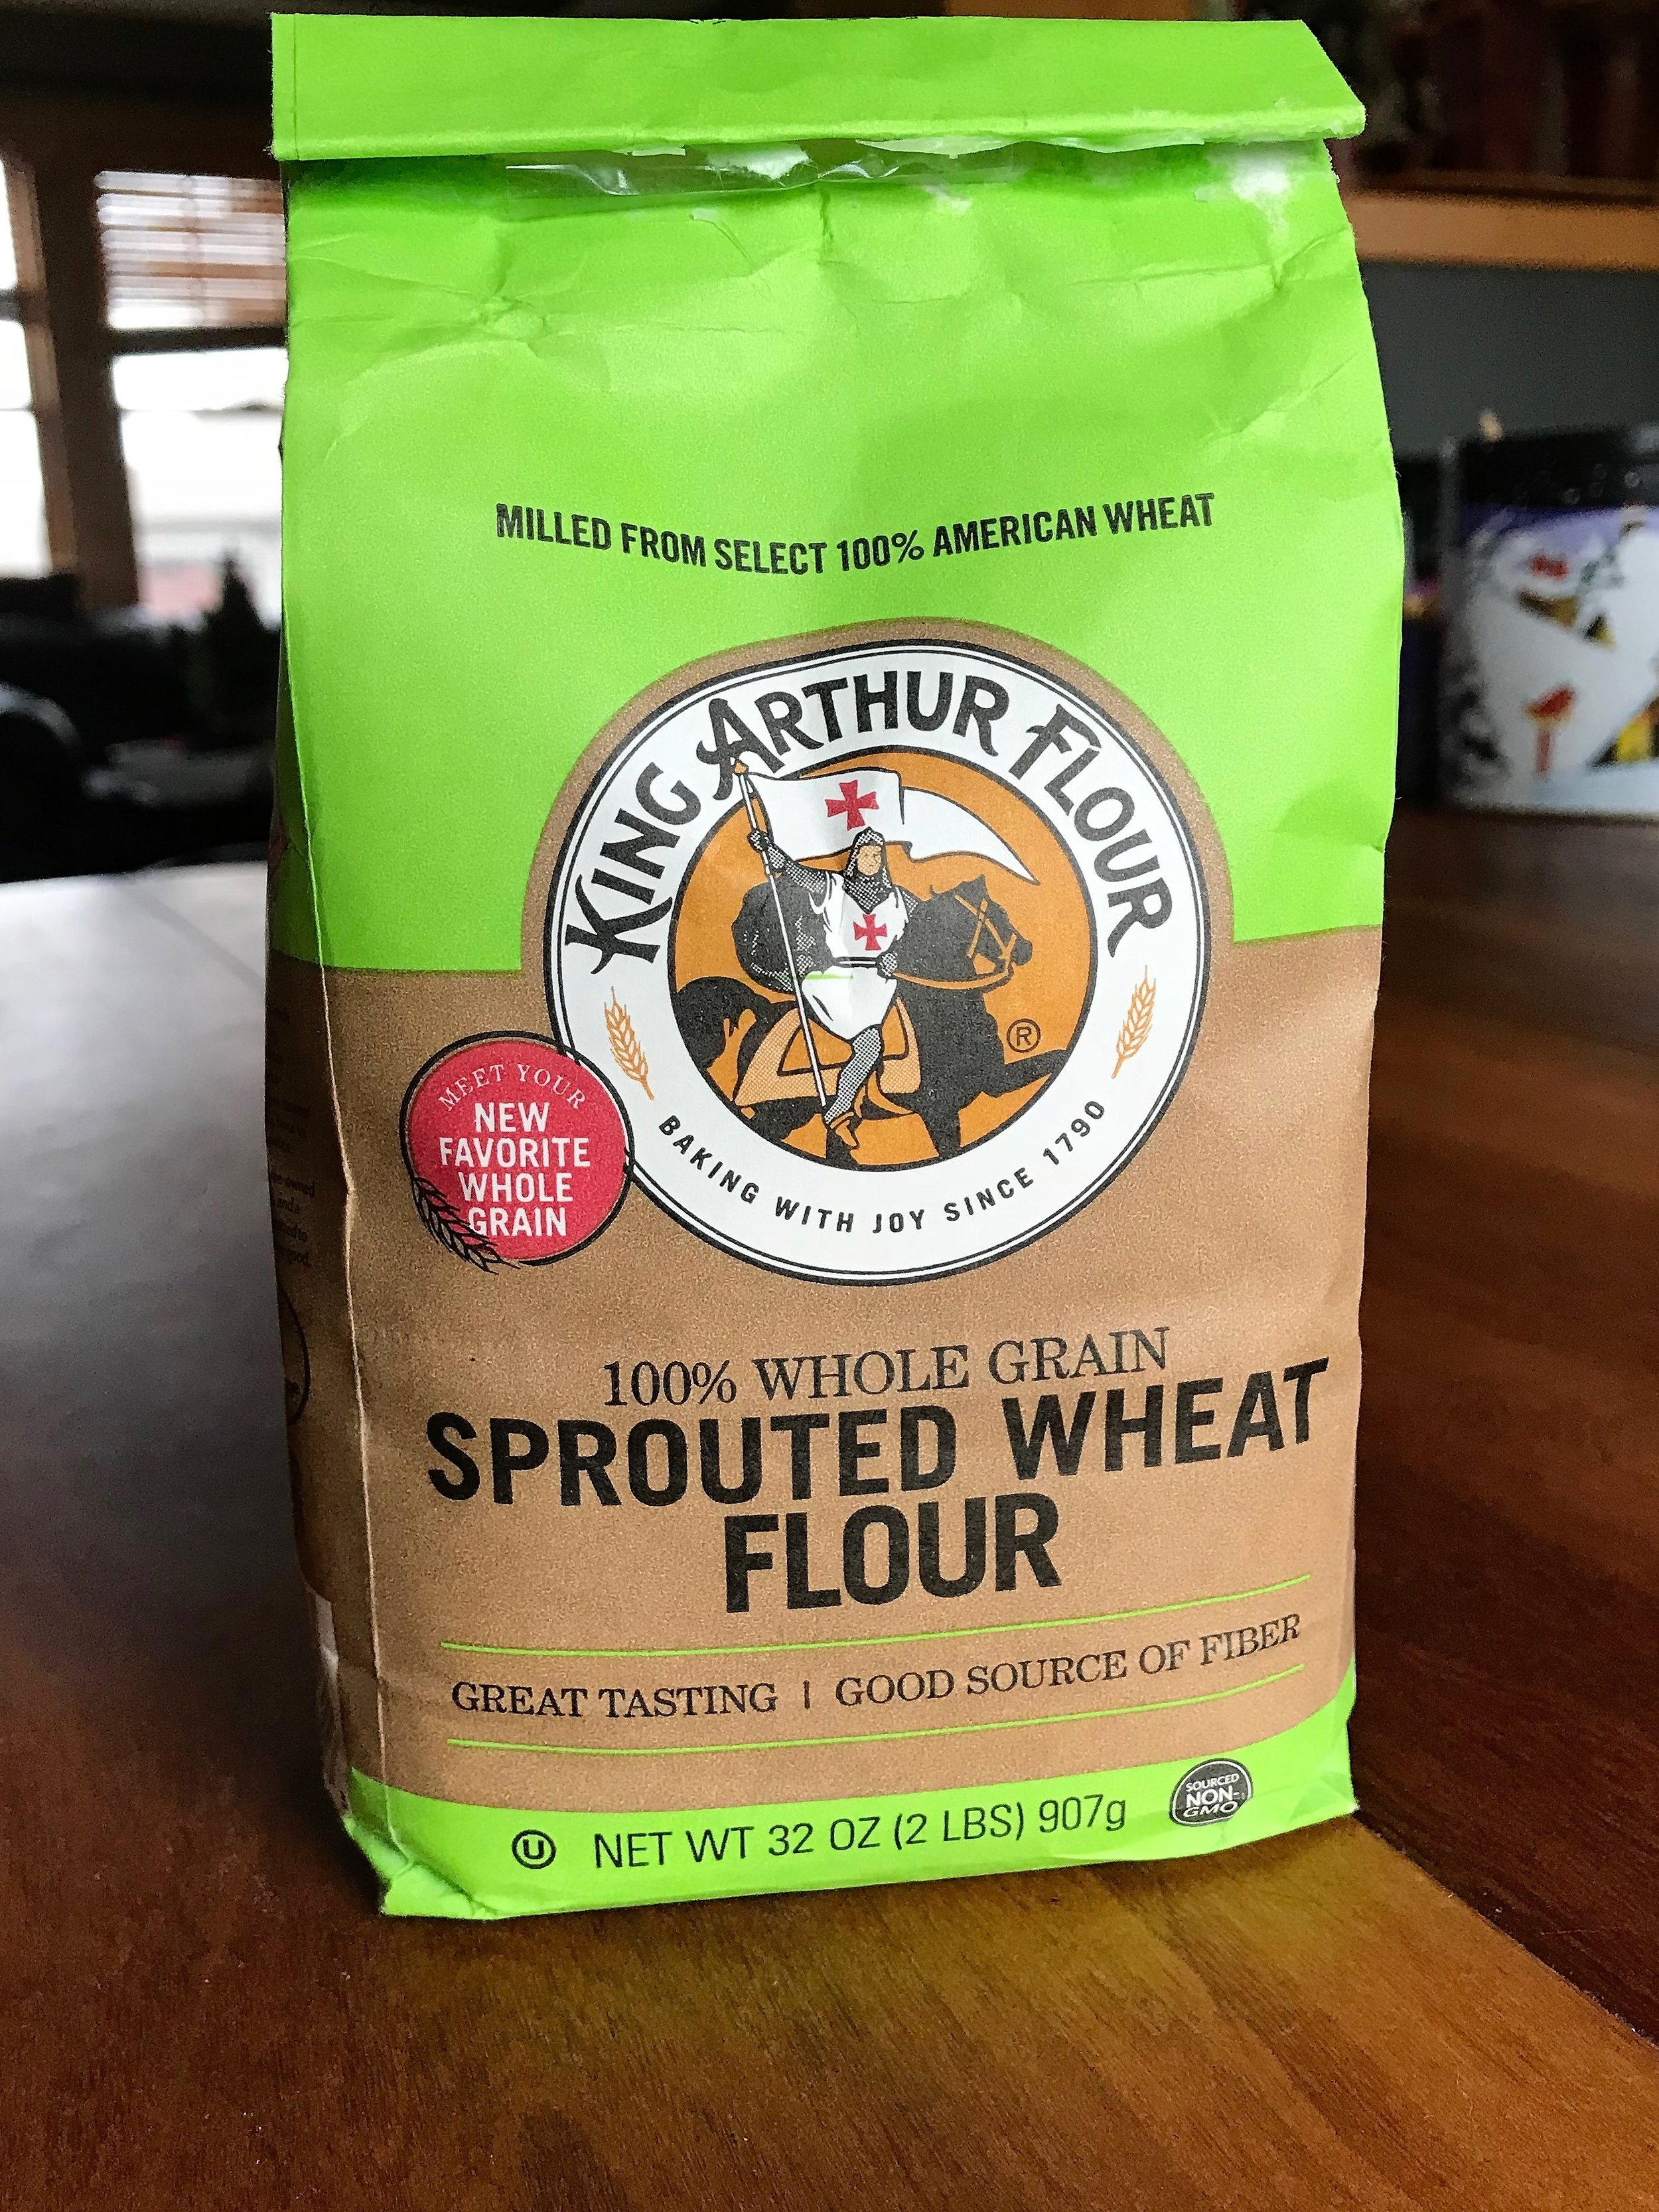 Sprouted flour! Need I say more? - Check out pages 127-128 of Living Wellness for Growth Groups for more info why we love sprouted grains. Where to buy: Available at Whole Foods, ThriveMarket.com, and Amazon.com (though only through Prime Pantry or huge quantities)